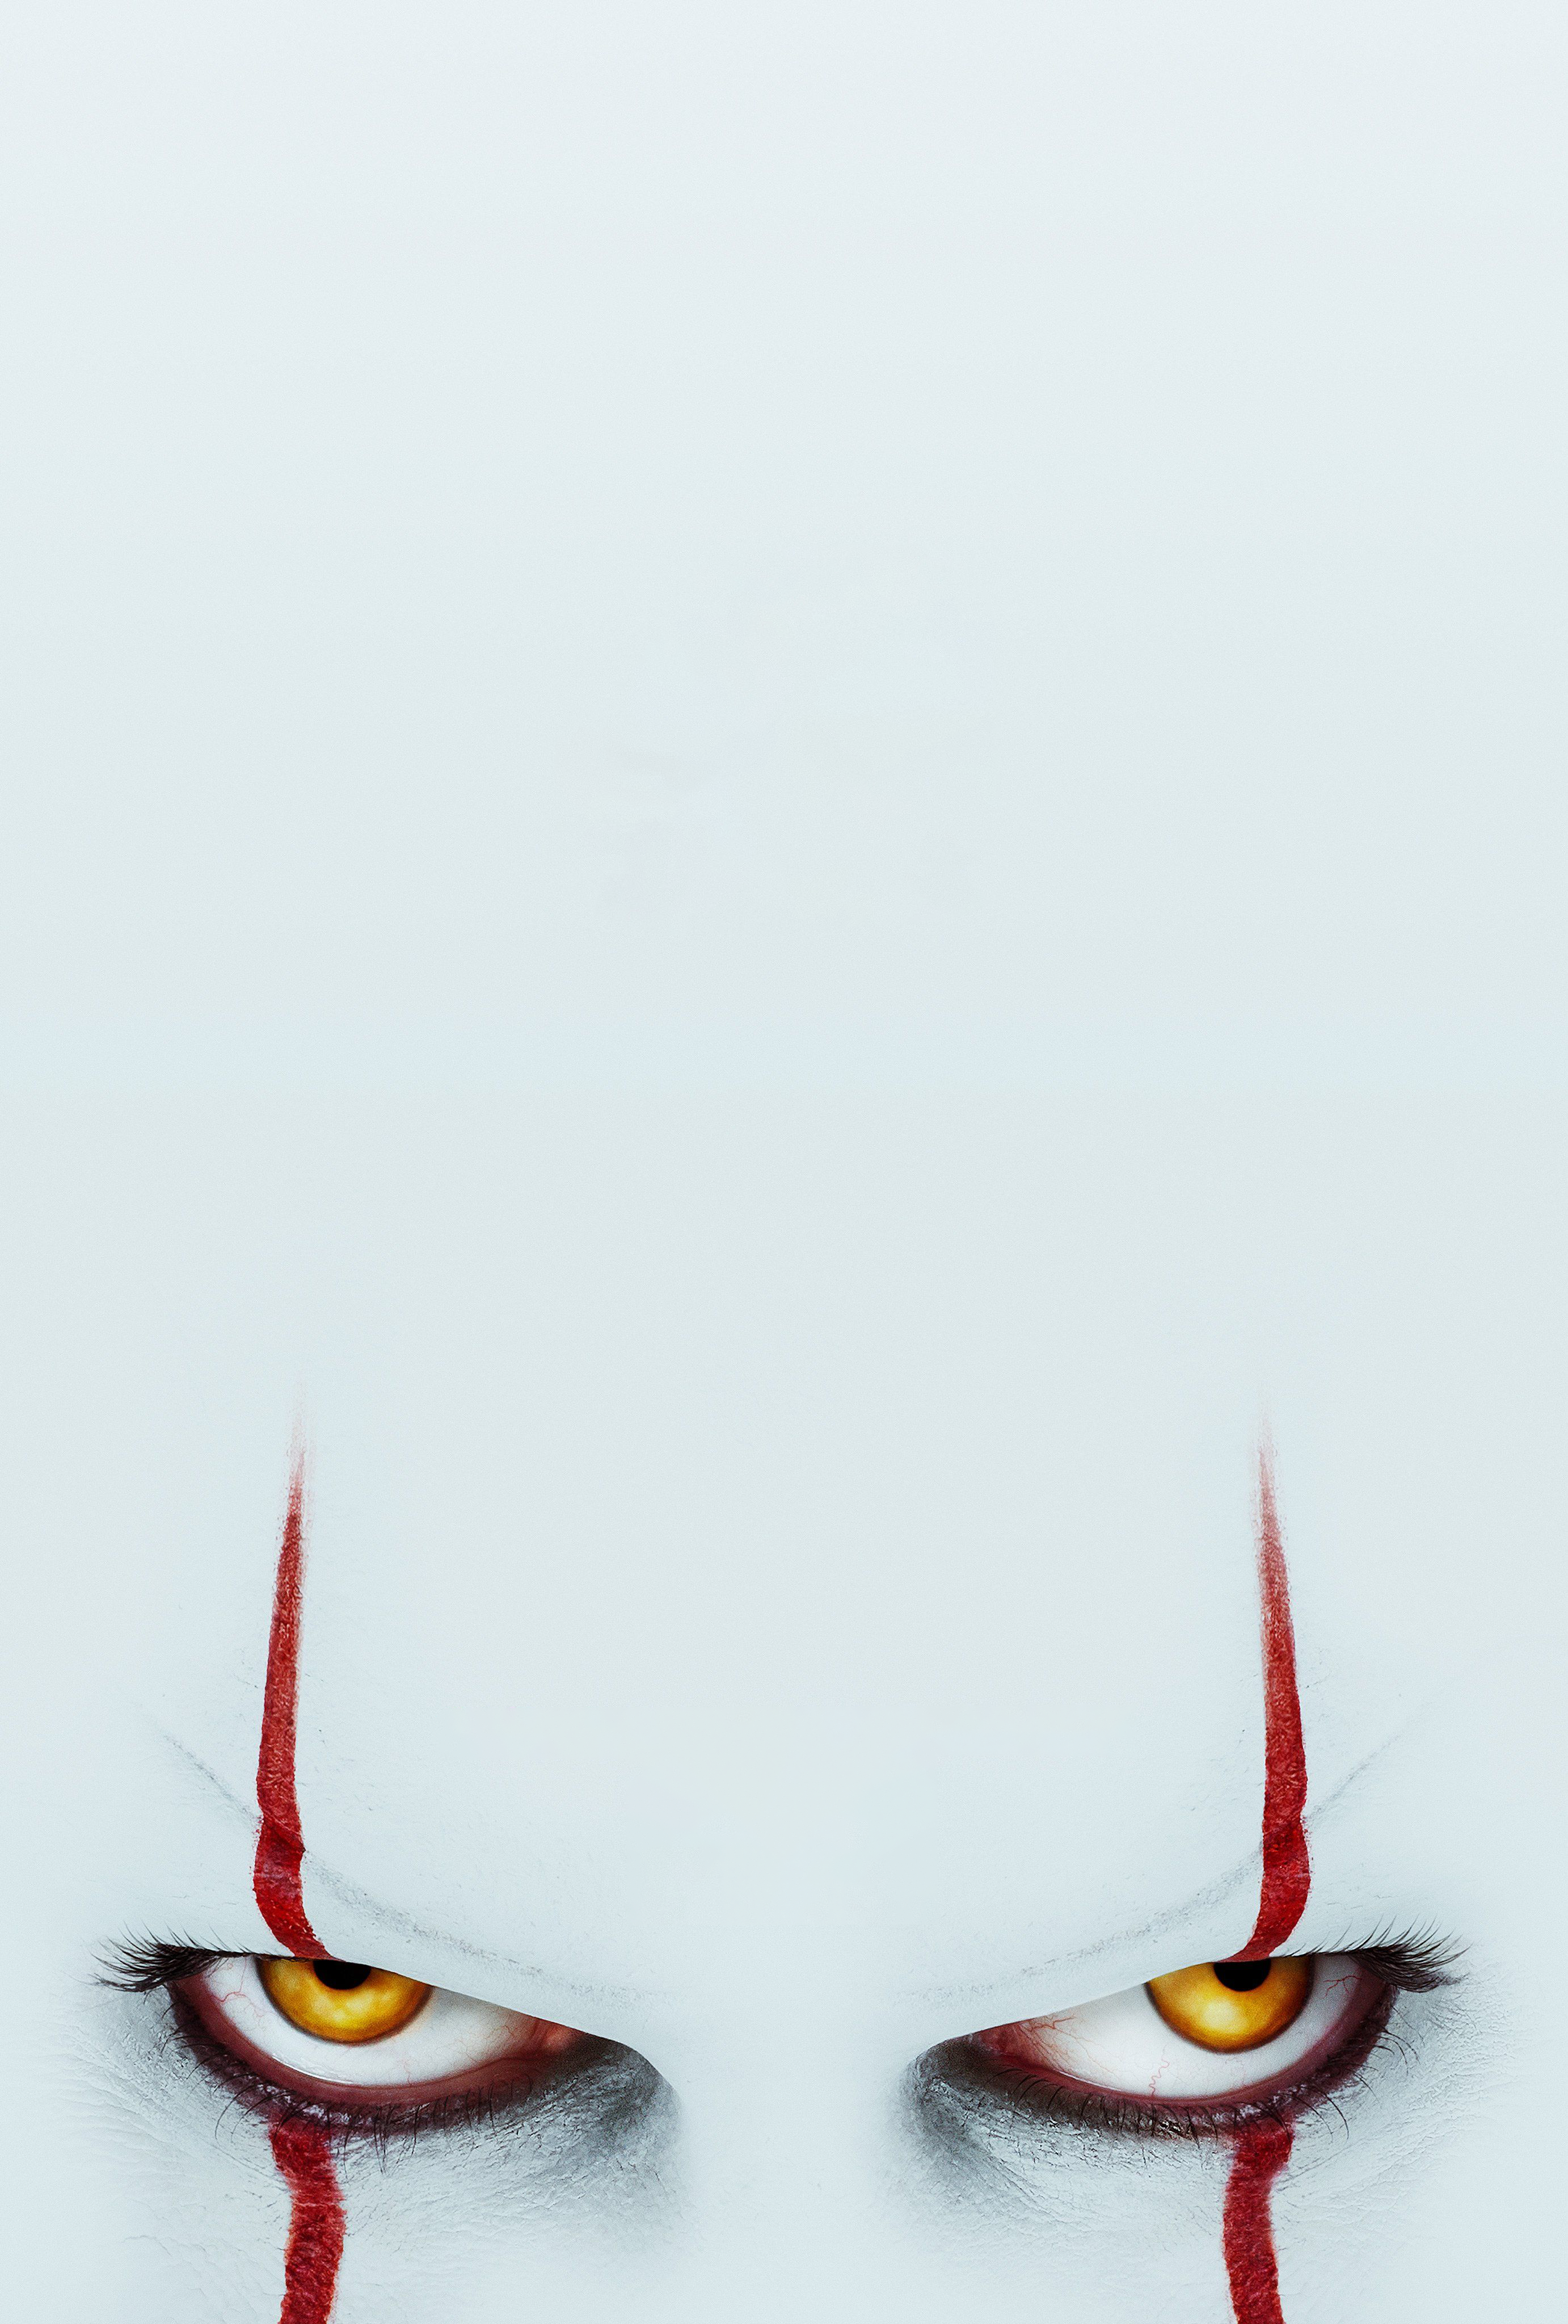 Here S A Super High Quality It Chapter Two Poster With No Text H Fondos De Pantalla De Peliculas Descargas De Fondos De Pantalla Fondos De Pantalla Movibles